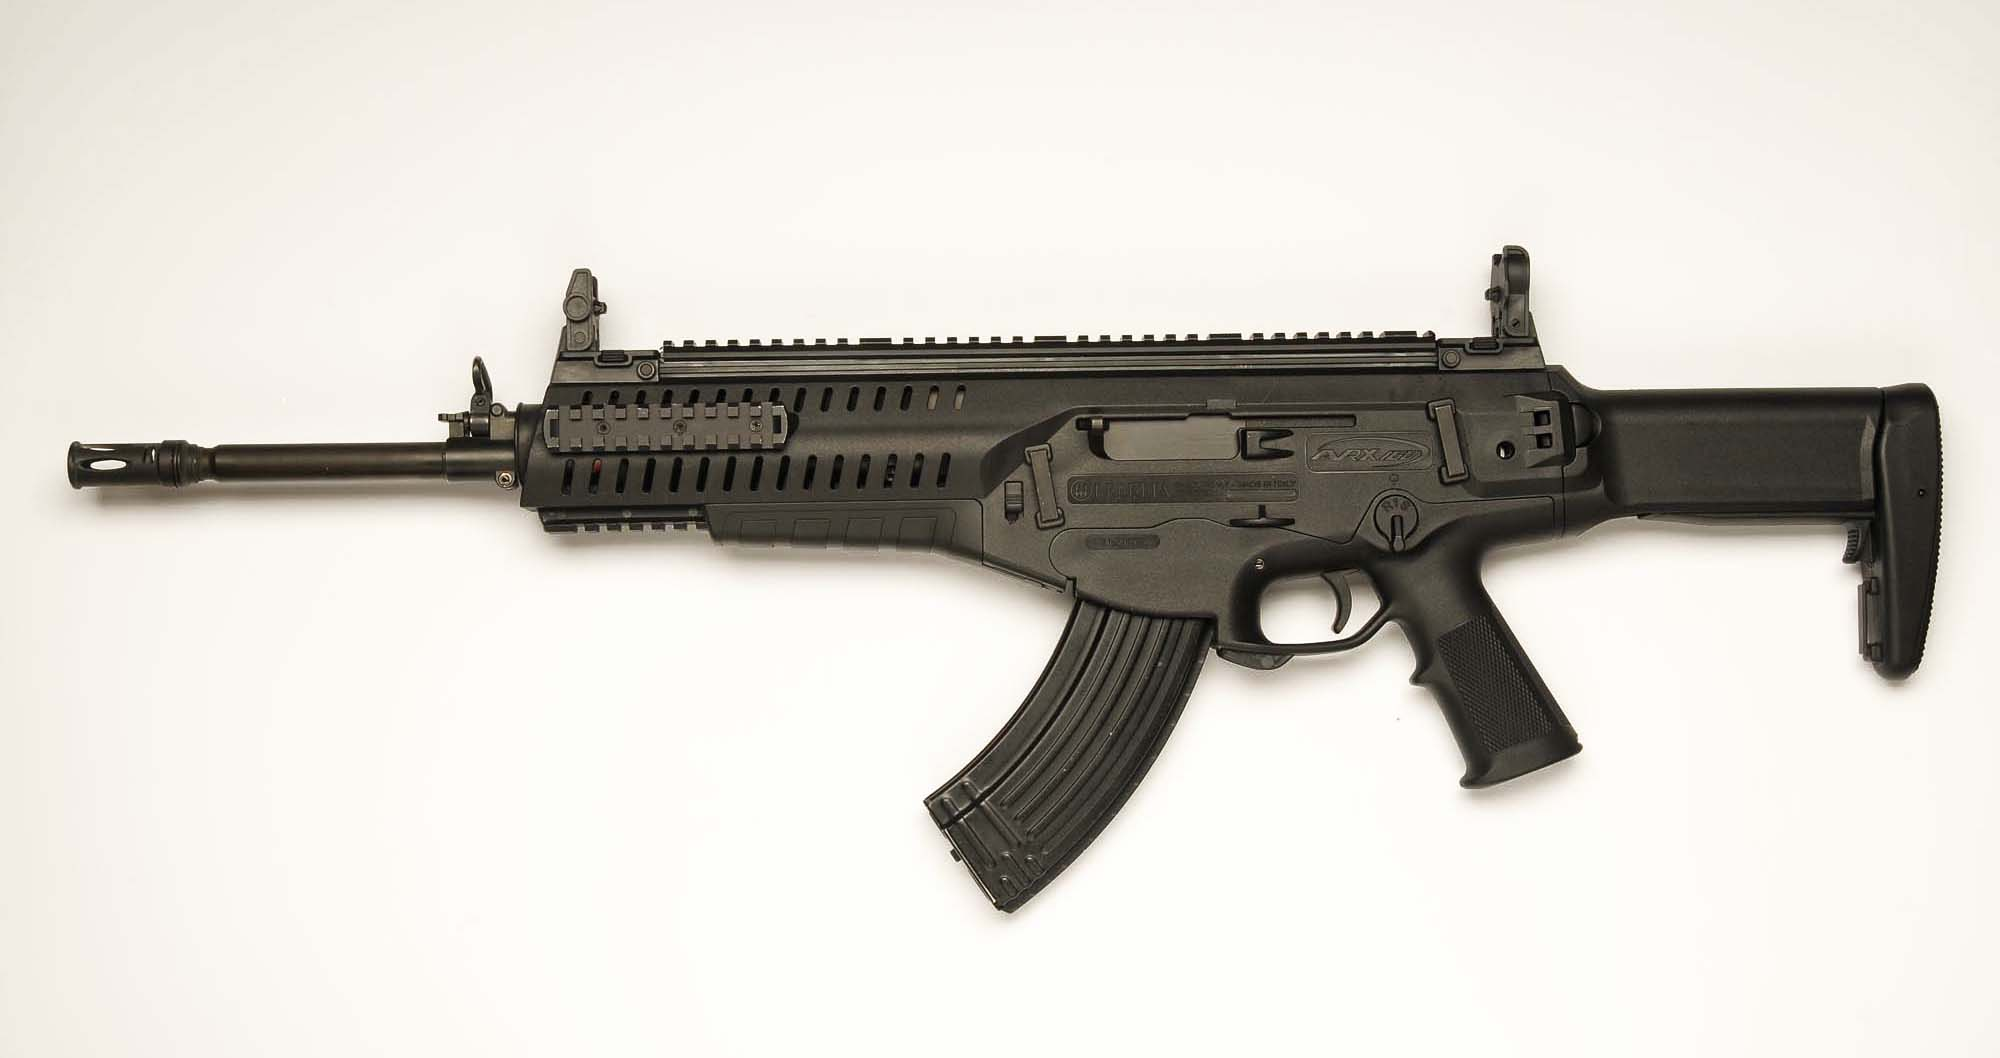 A left side view of the ARX-160 in the 7.62x39mm caliber